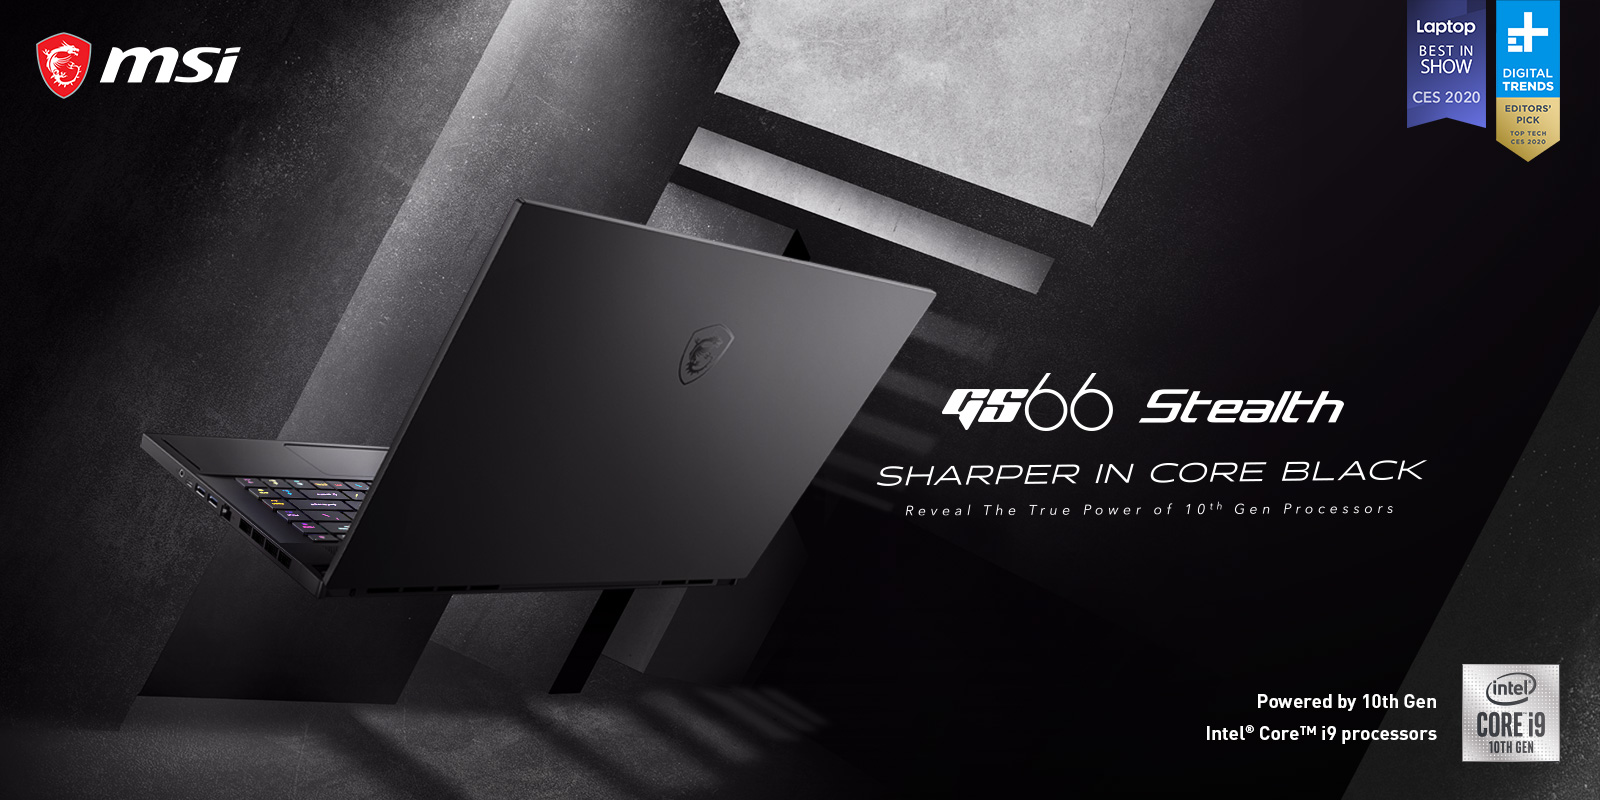 Hero Image: GS66 Stealth product image. The text on the right says: GS66 Stealth. SHARPER IN CORE BLACK. Reveal The True Power of 10th Gen Processors